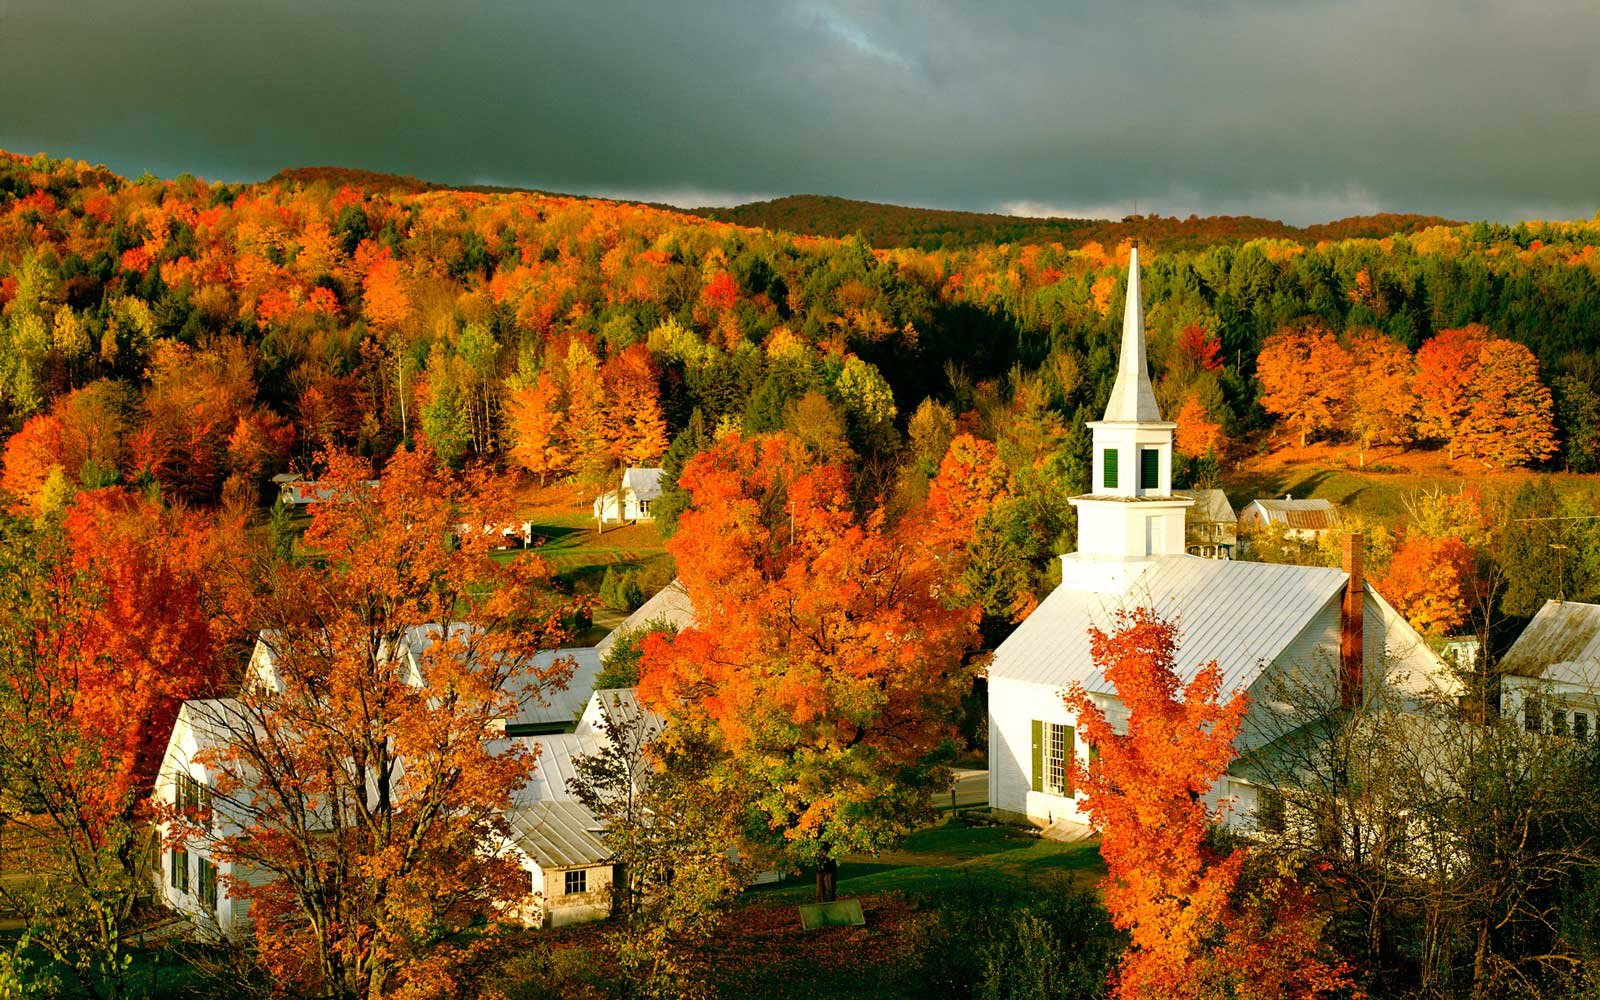 Autumn Foliage in Waits River, Vermont